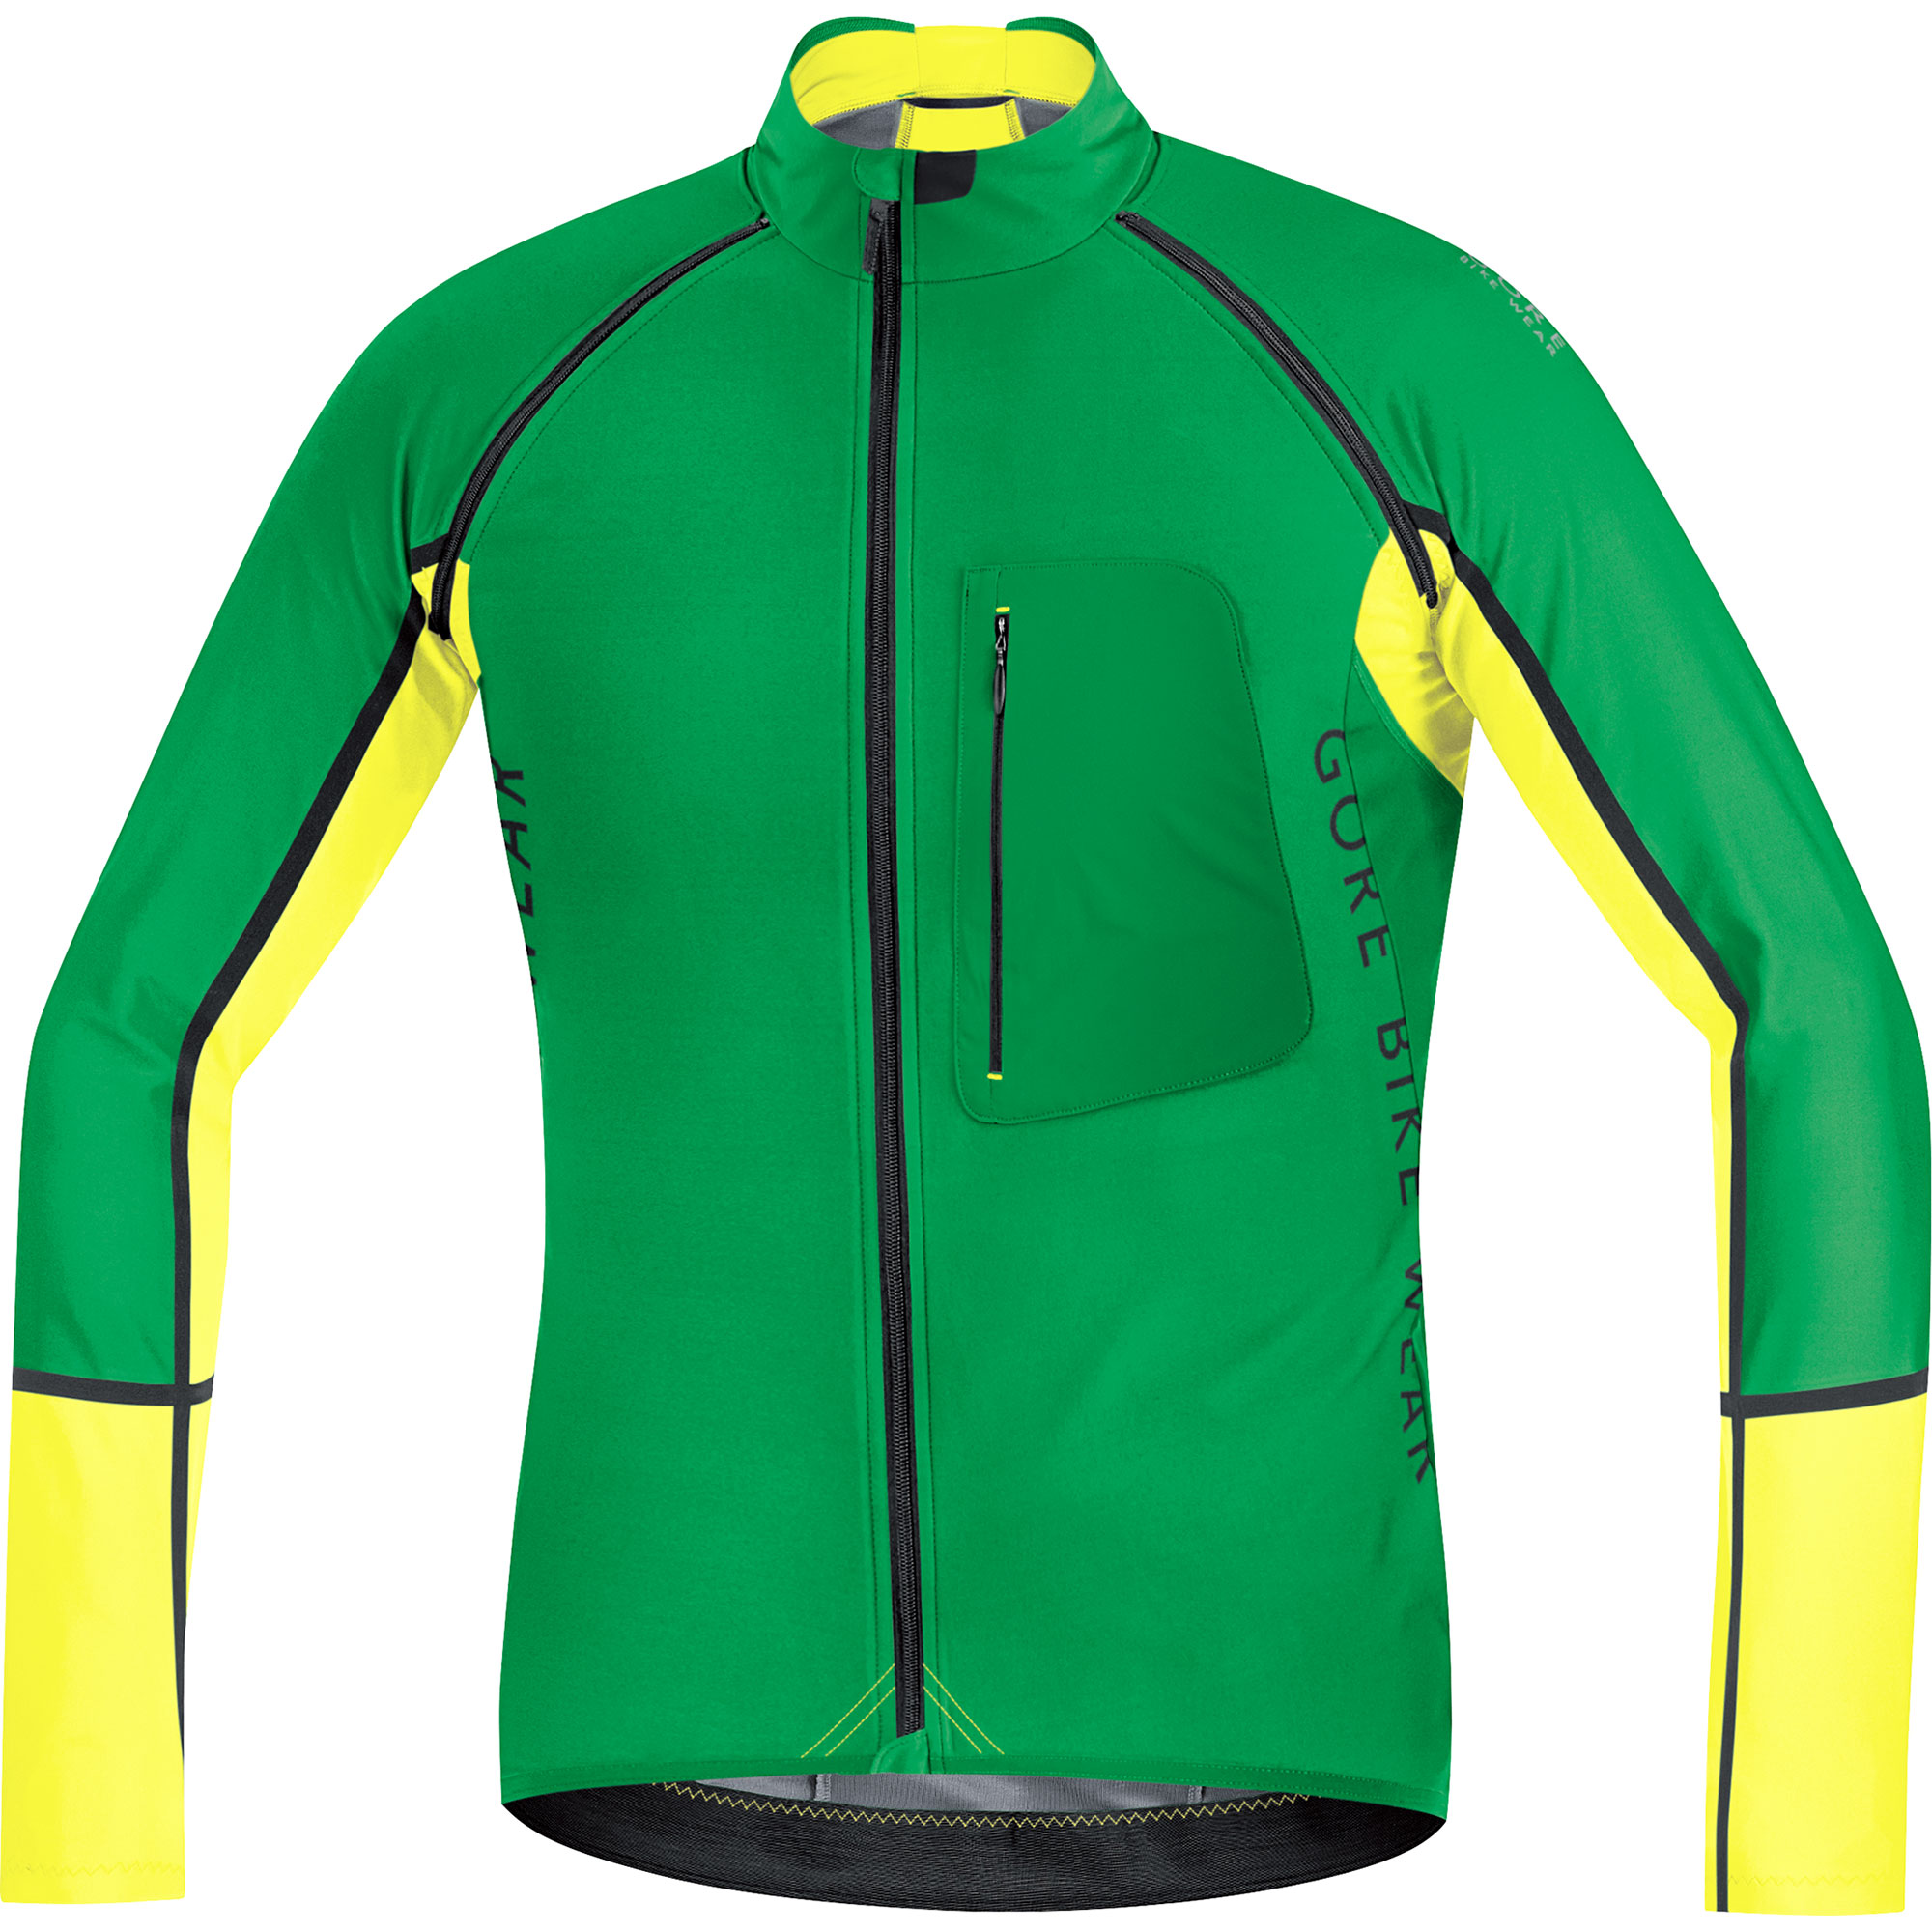 Maillot GORE BIKE WEAR ALP-X PRO WINDSTOPPER SOFT SHELL ZIP-OFF Mangas largas desmontables Verde/Amarillo